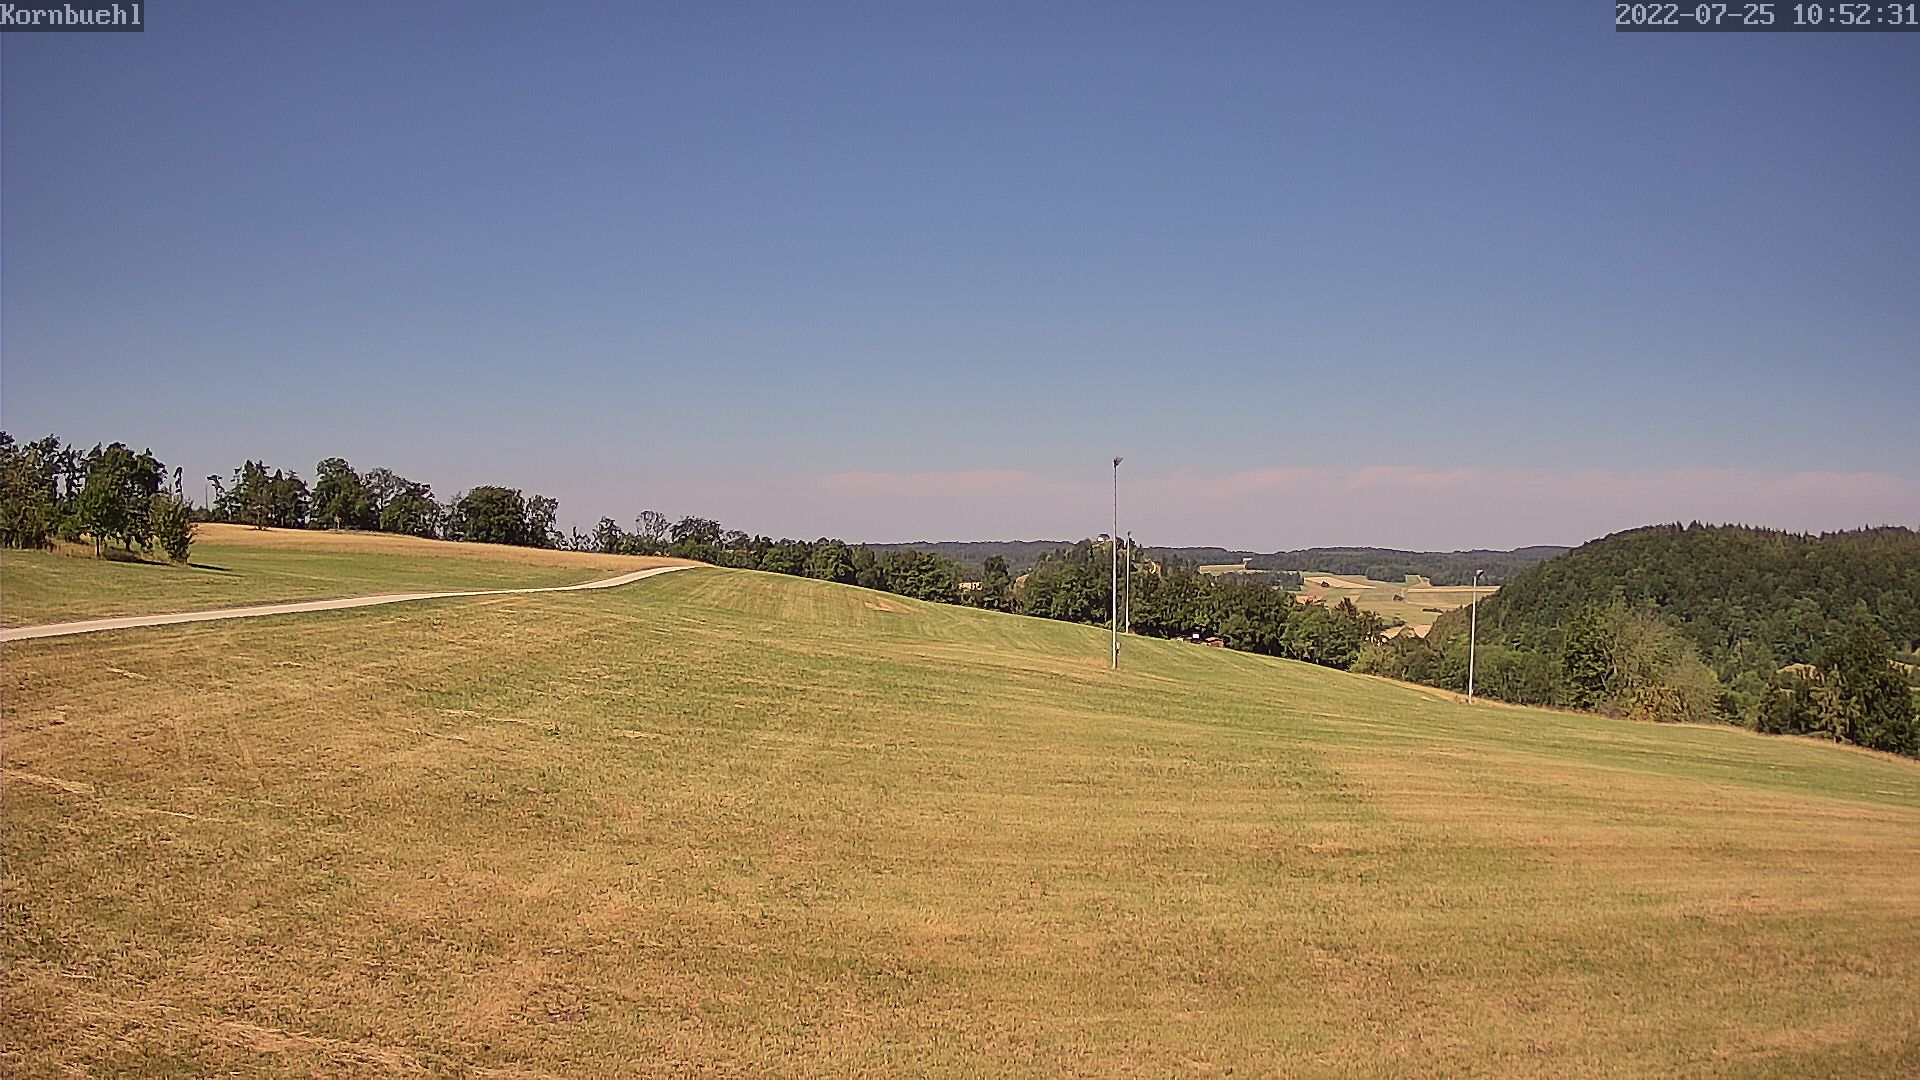 Webcam Ski Resort Salmendingen Swabian Jura